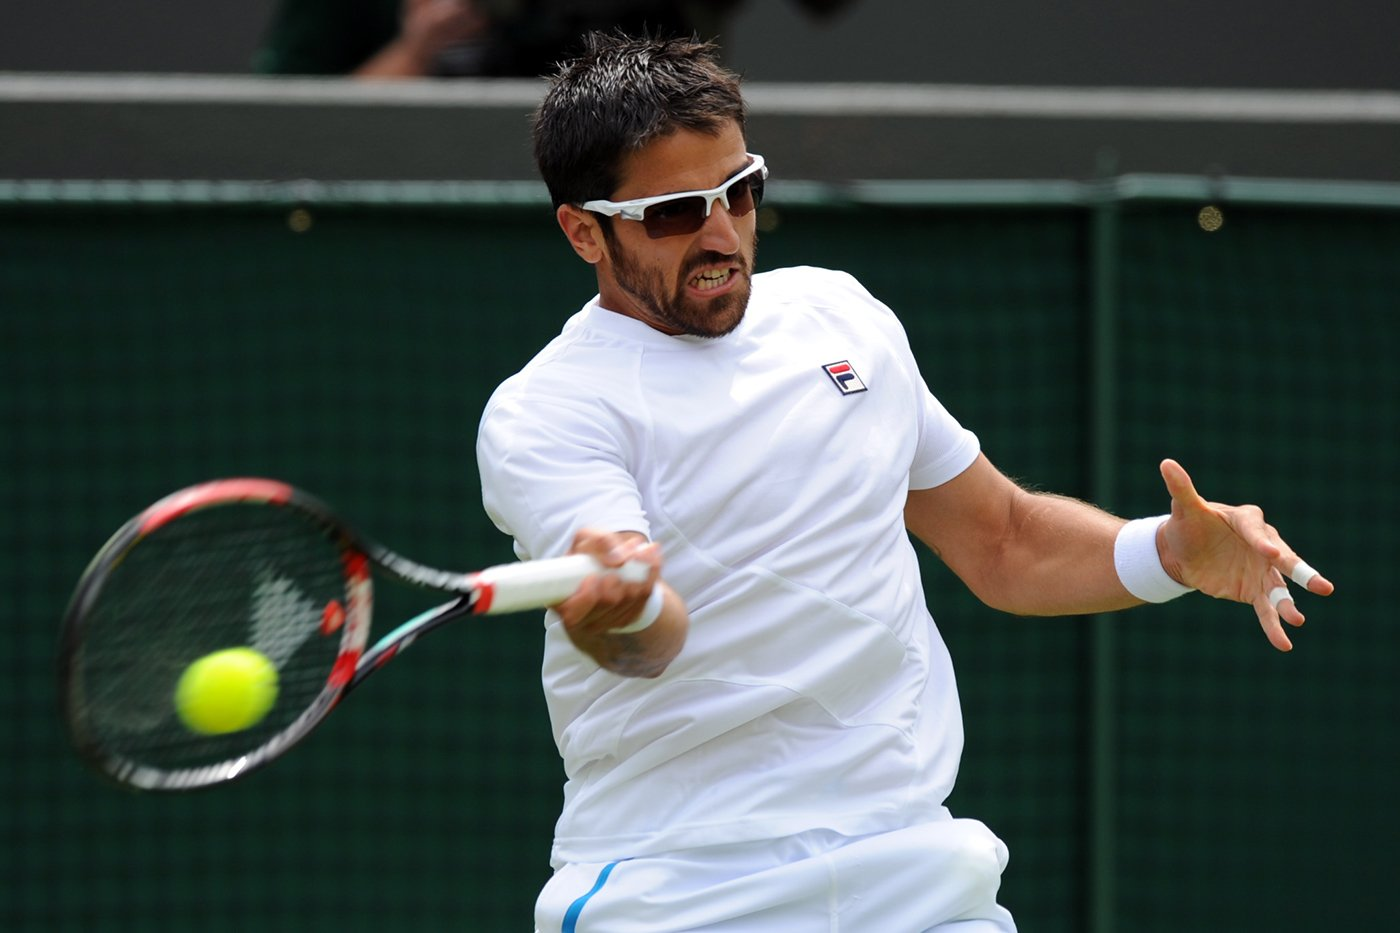 Wimbledon Tennis Match Athlete Wearing Sunglasses